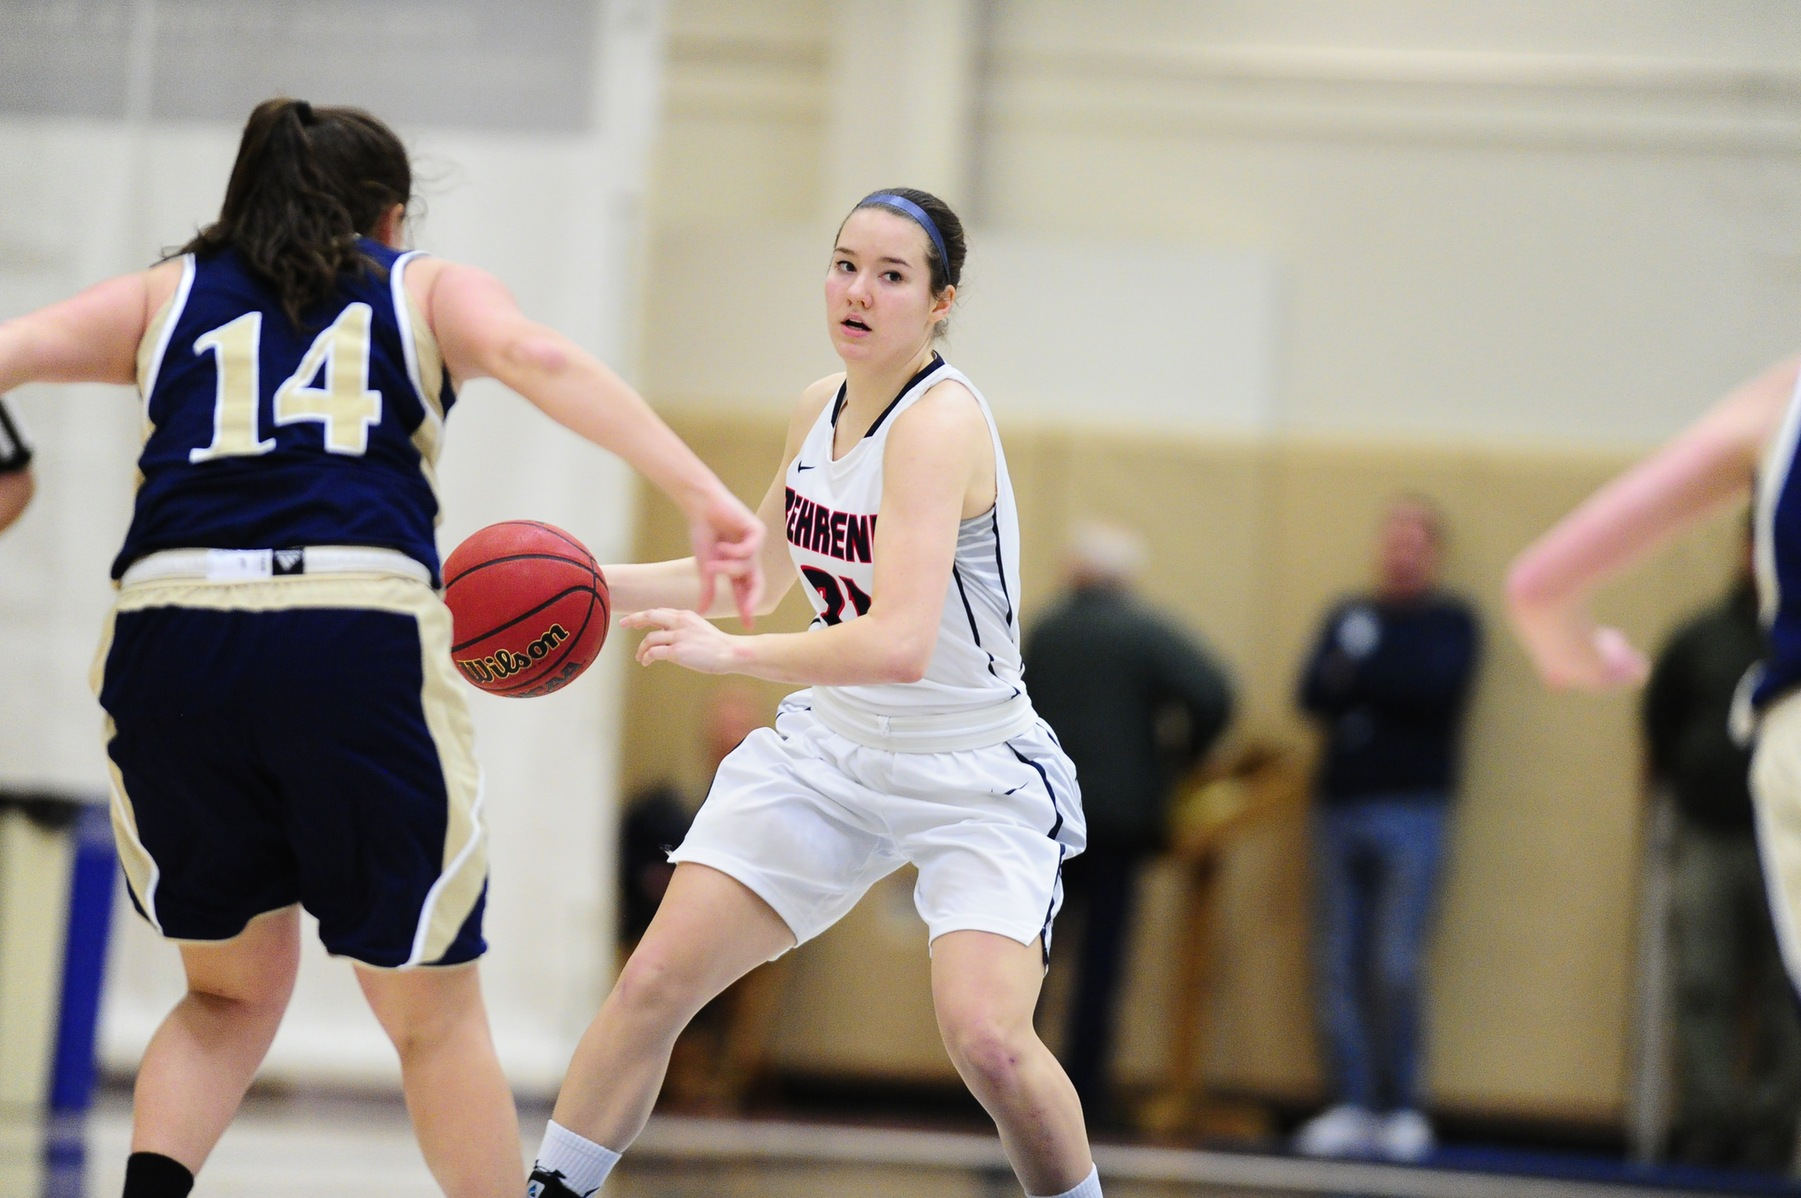 Women's Basketball Drops Season Opener to Allegheny